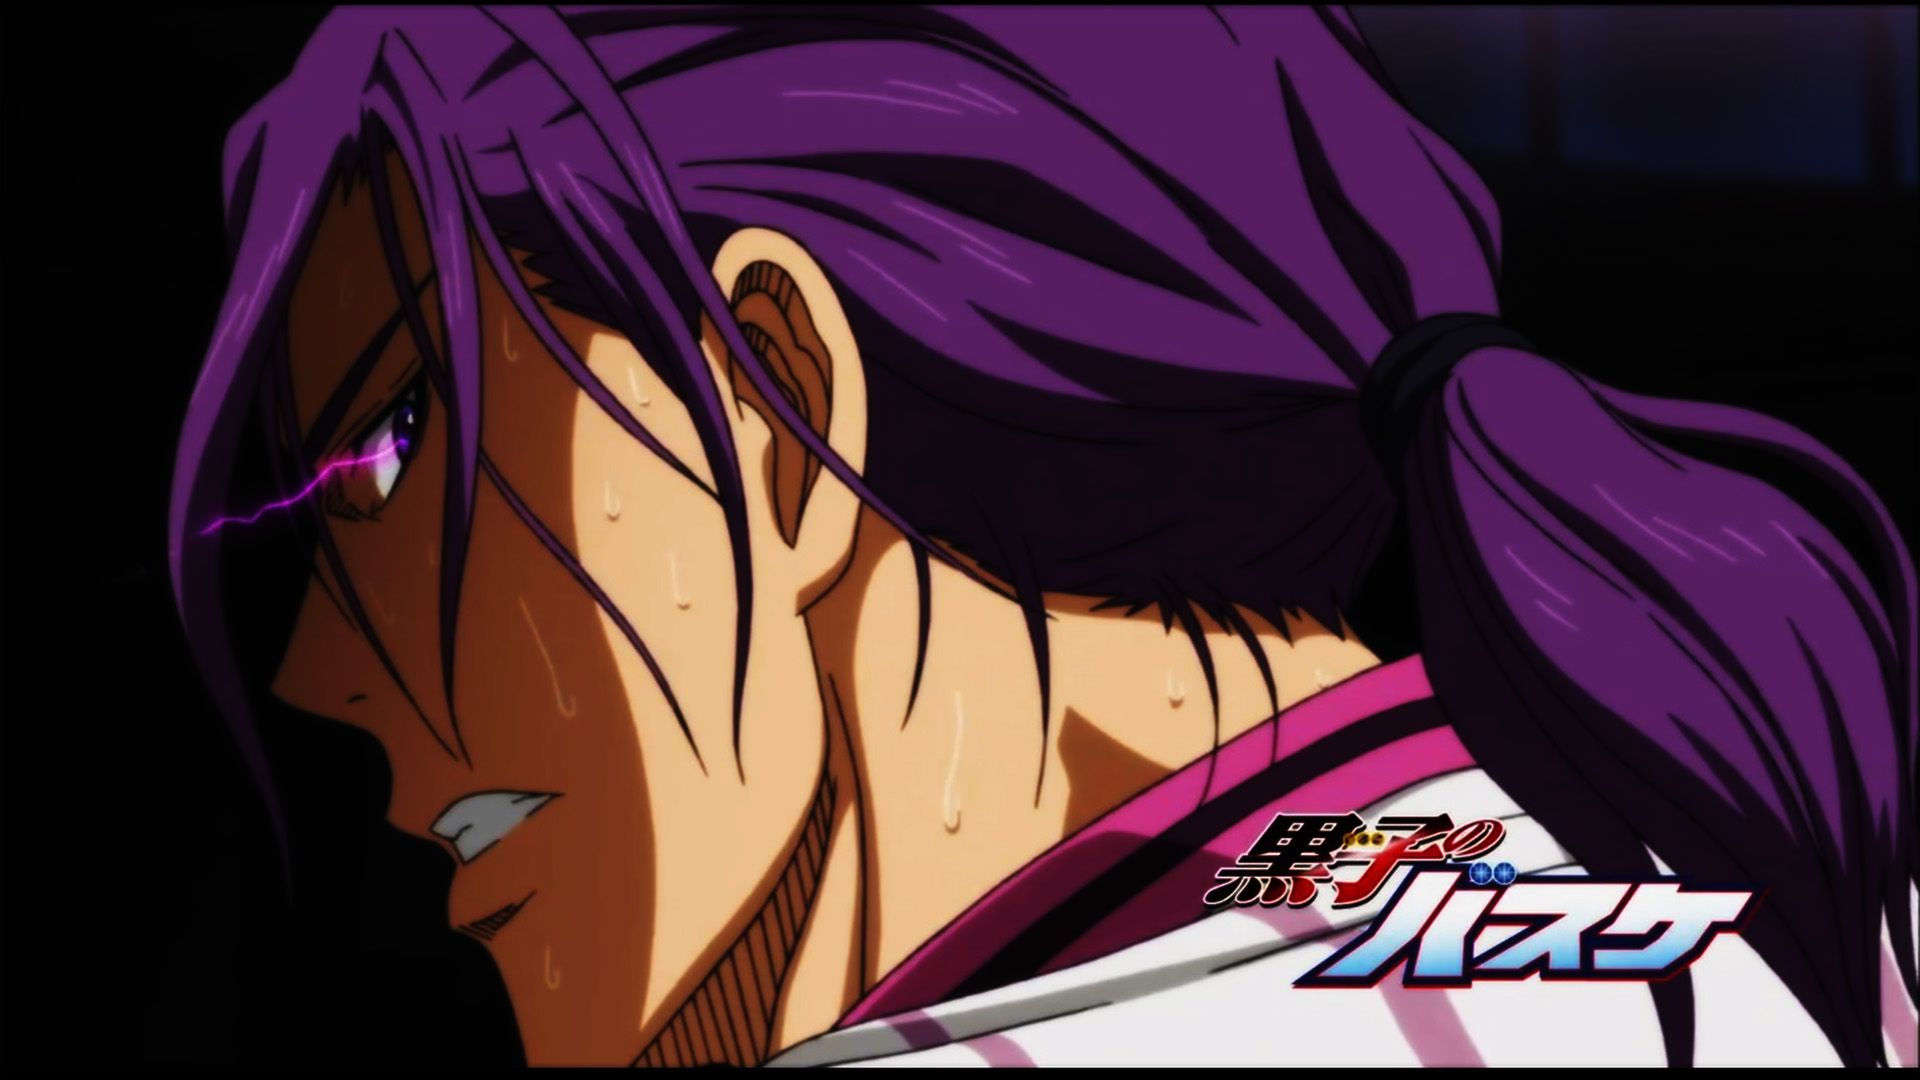 Murasakibara Atshusi Zone HD Wallpaper